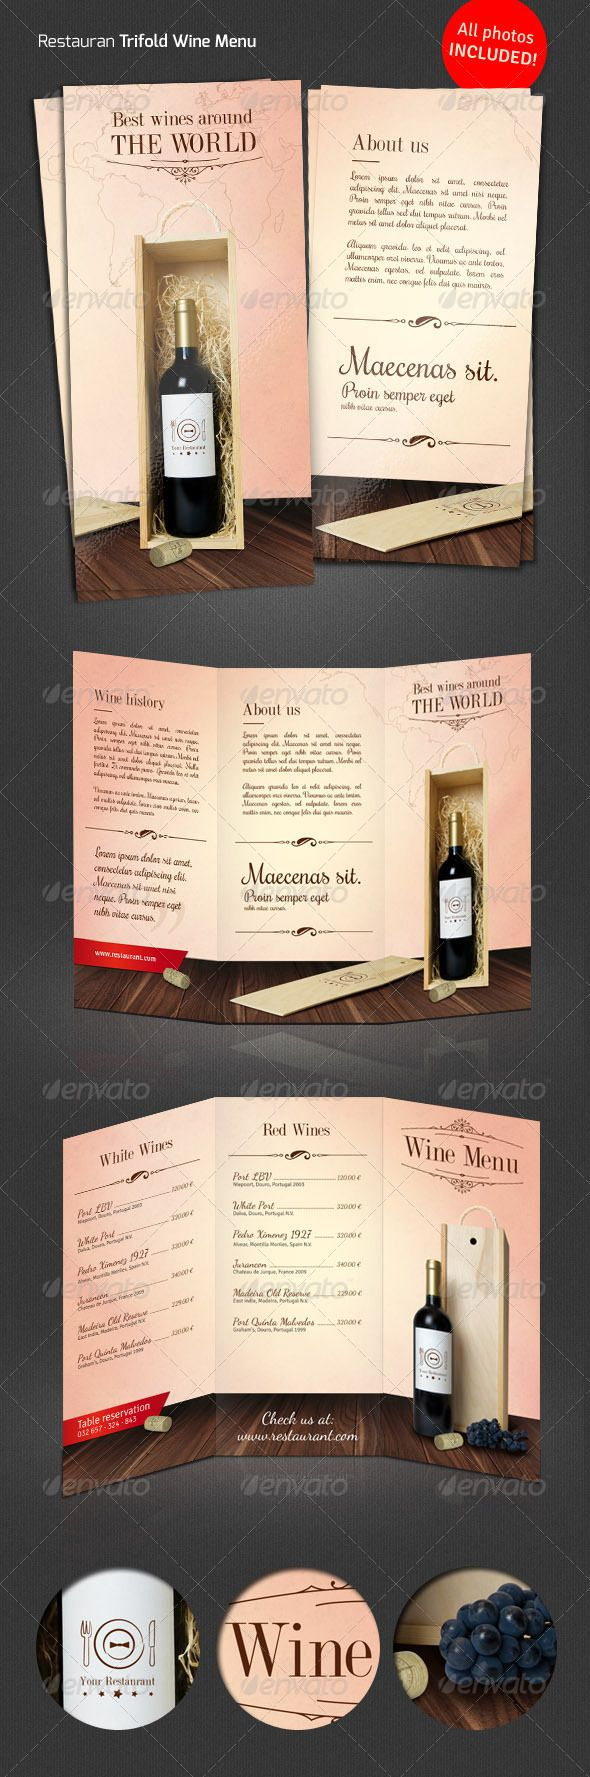 Wine / Restaurant Tri-Fold Menu  #GraphicRiver         Elegant tri fold DL (295×210 to 99×210 mm) wine menu.    All photos and logo included!  print ready  CMYK, 300 dpi  3 mm bleed  free fonts used: Signika, Dancing Script, Dubiel  	 Fonts are NOT included (links provided in the help file).  	 Free ornaments used.     Created: 7November13 GraphicsFilesIncluded: PhotoshopPSD Layered: Yes MinimumAdobeCSVersion: CS3 PrintDimensions: 295x210